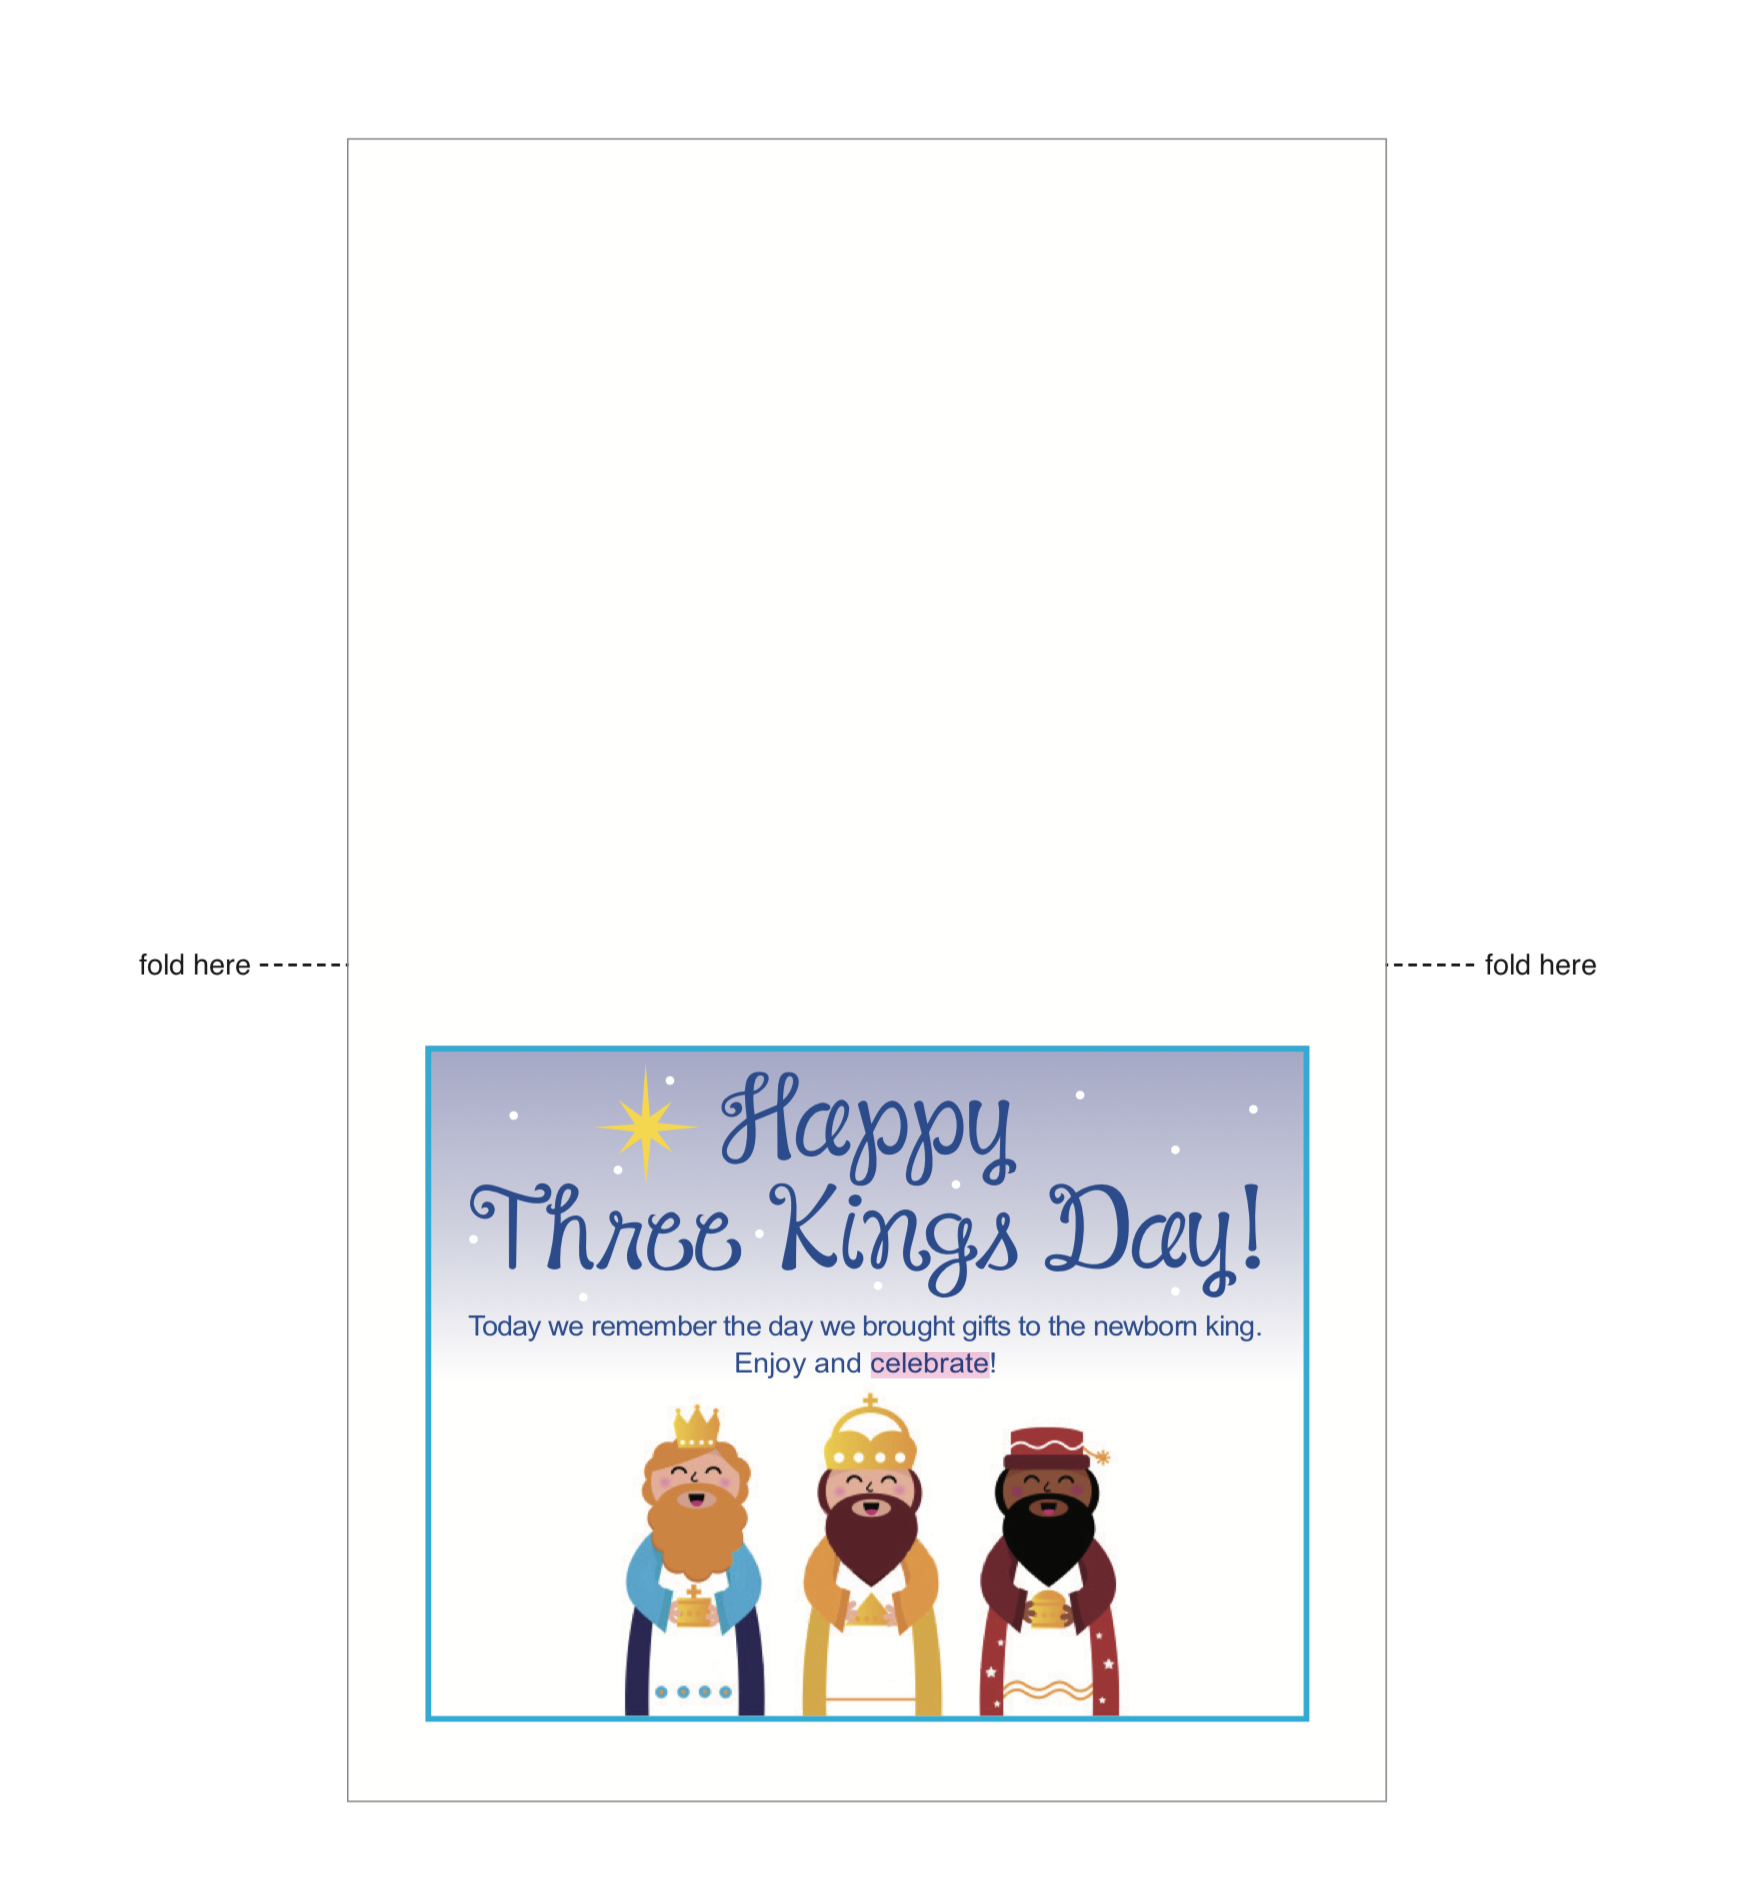 Prepare for Three Kings Day by using this three kings day printable on January 6th when the three kings stop by. Print the card and leave with a small gift. | LivingMiVidaLoca.com | #LivingMiVidaLoca #ThreeKingsDay #DiadelosReyesMagos #ThreeKings